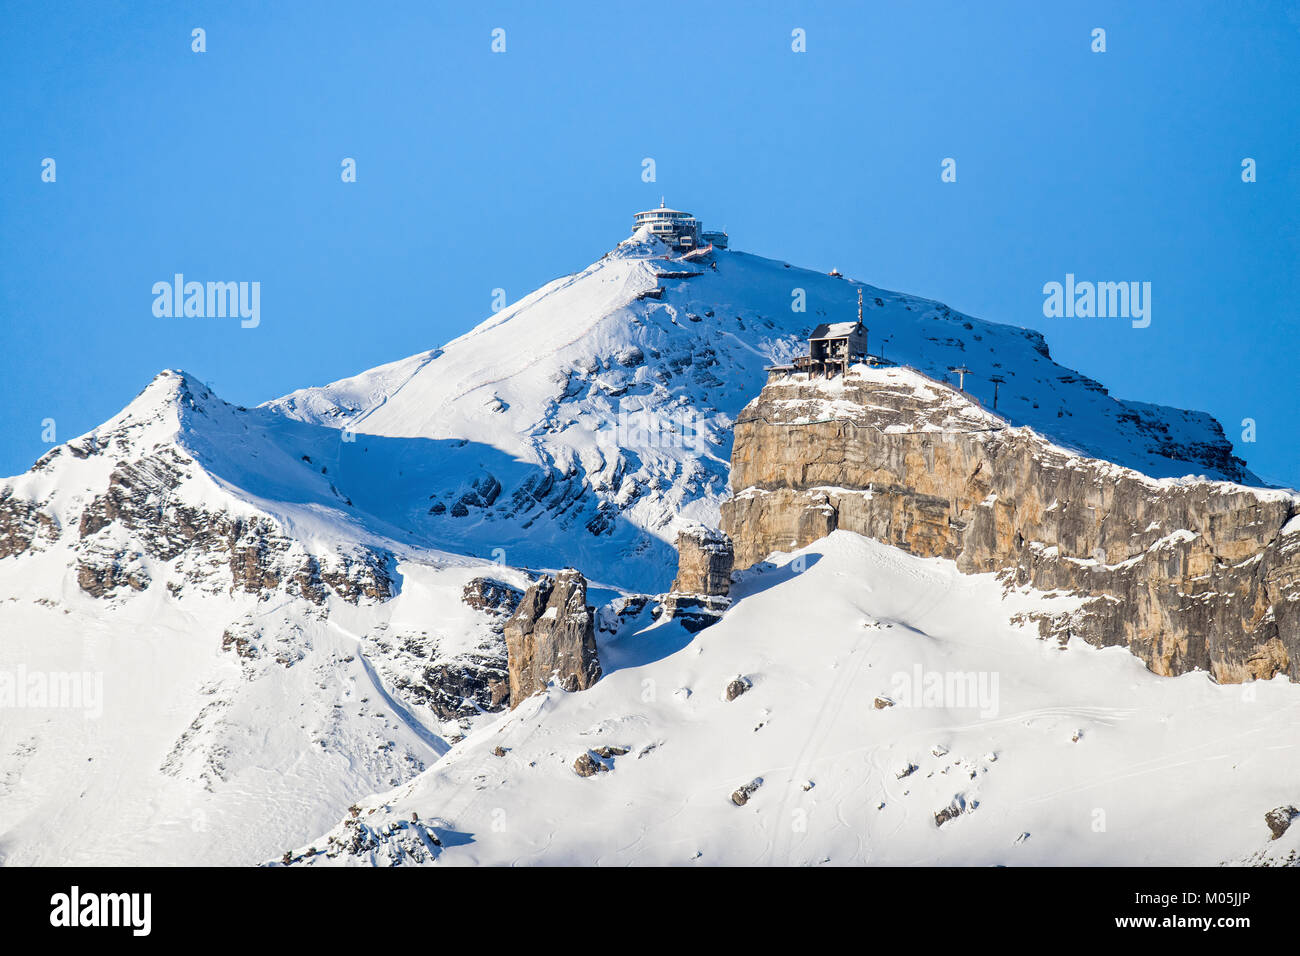 View of the ski resort Jungfrau Wengen in Switzerland - Stock Image